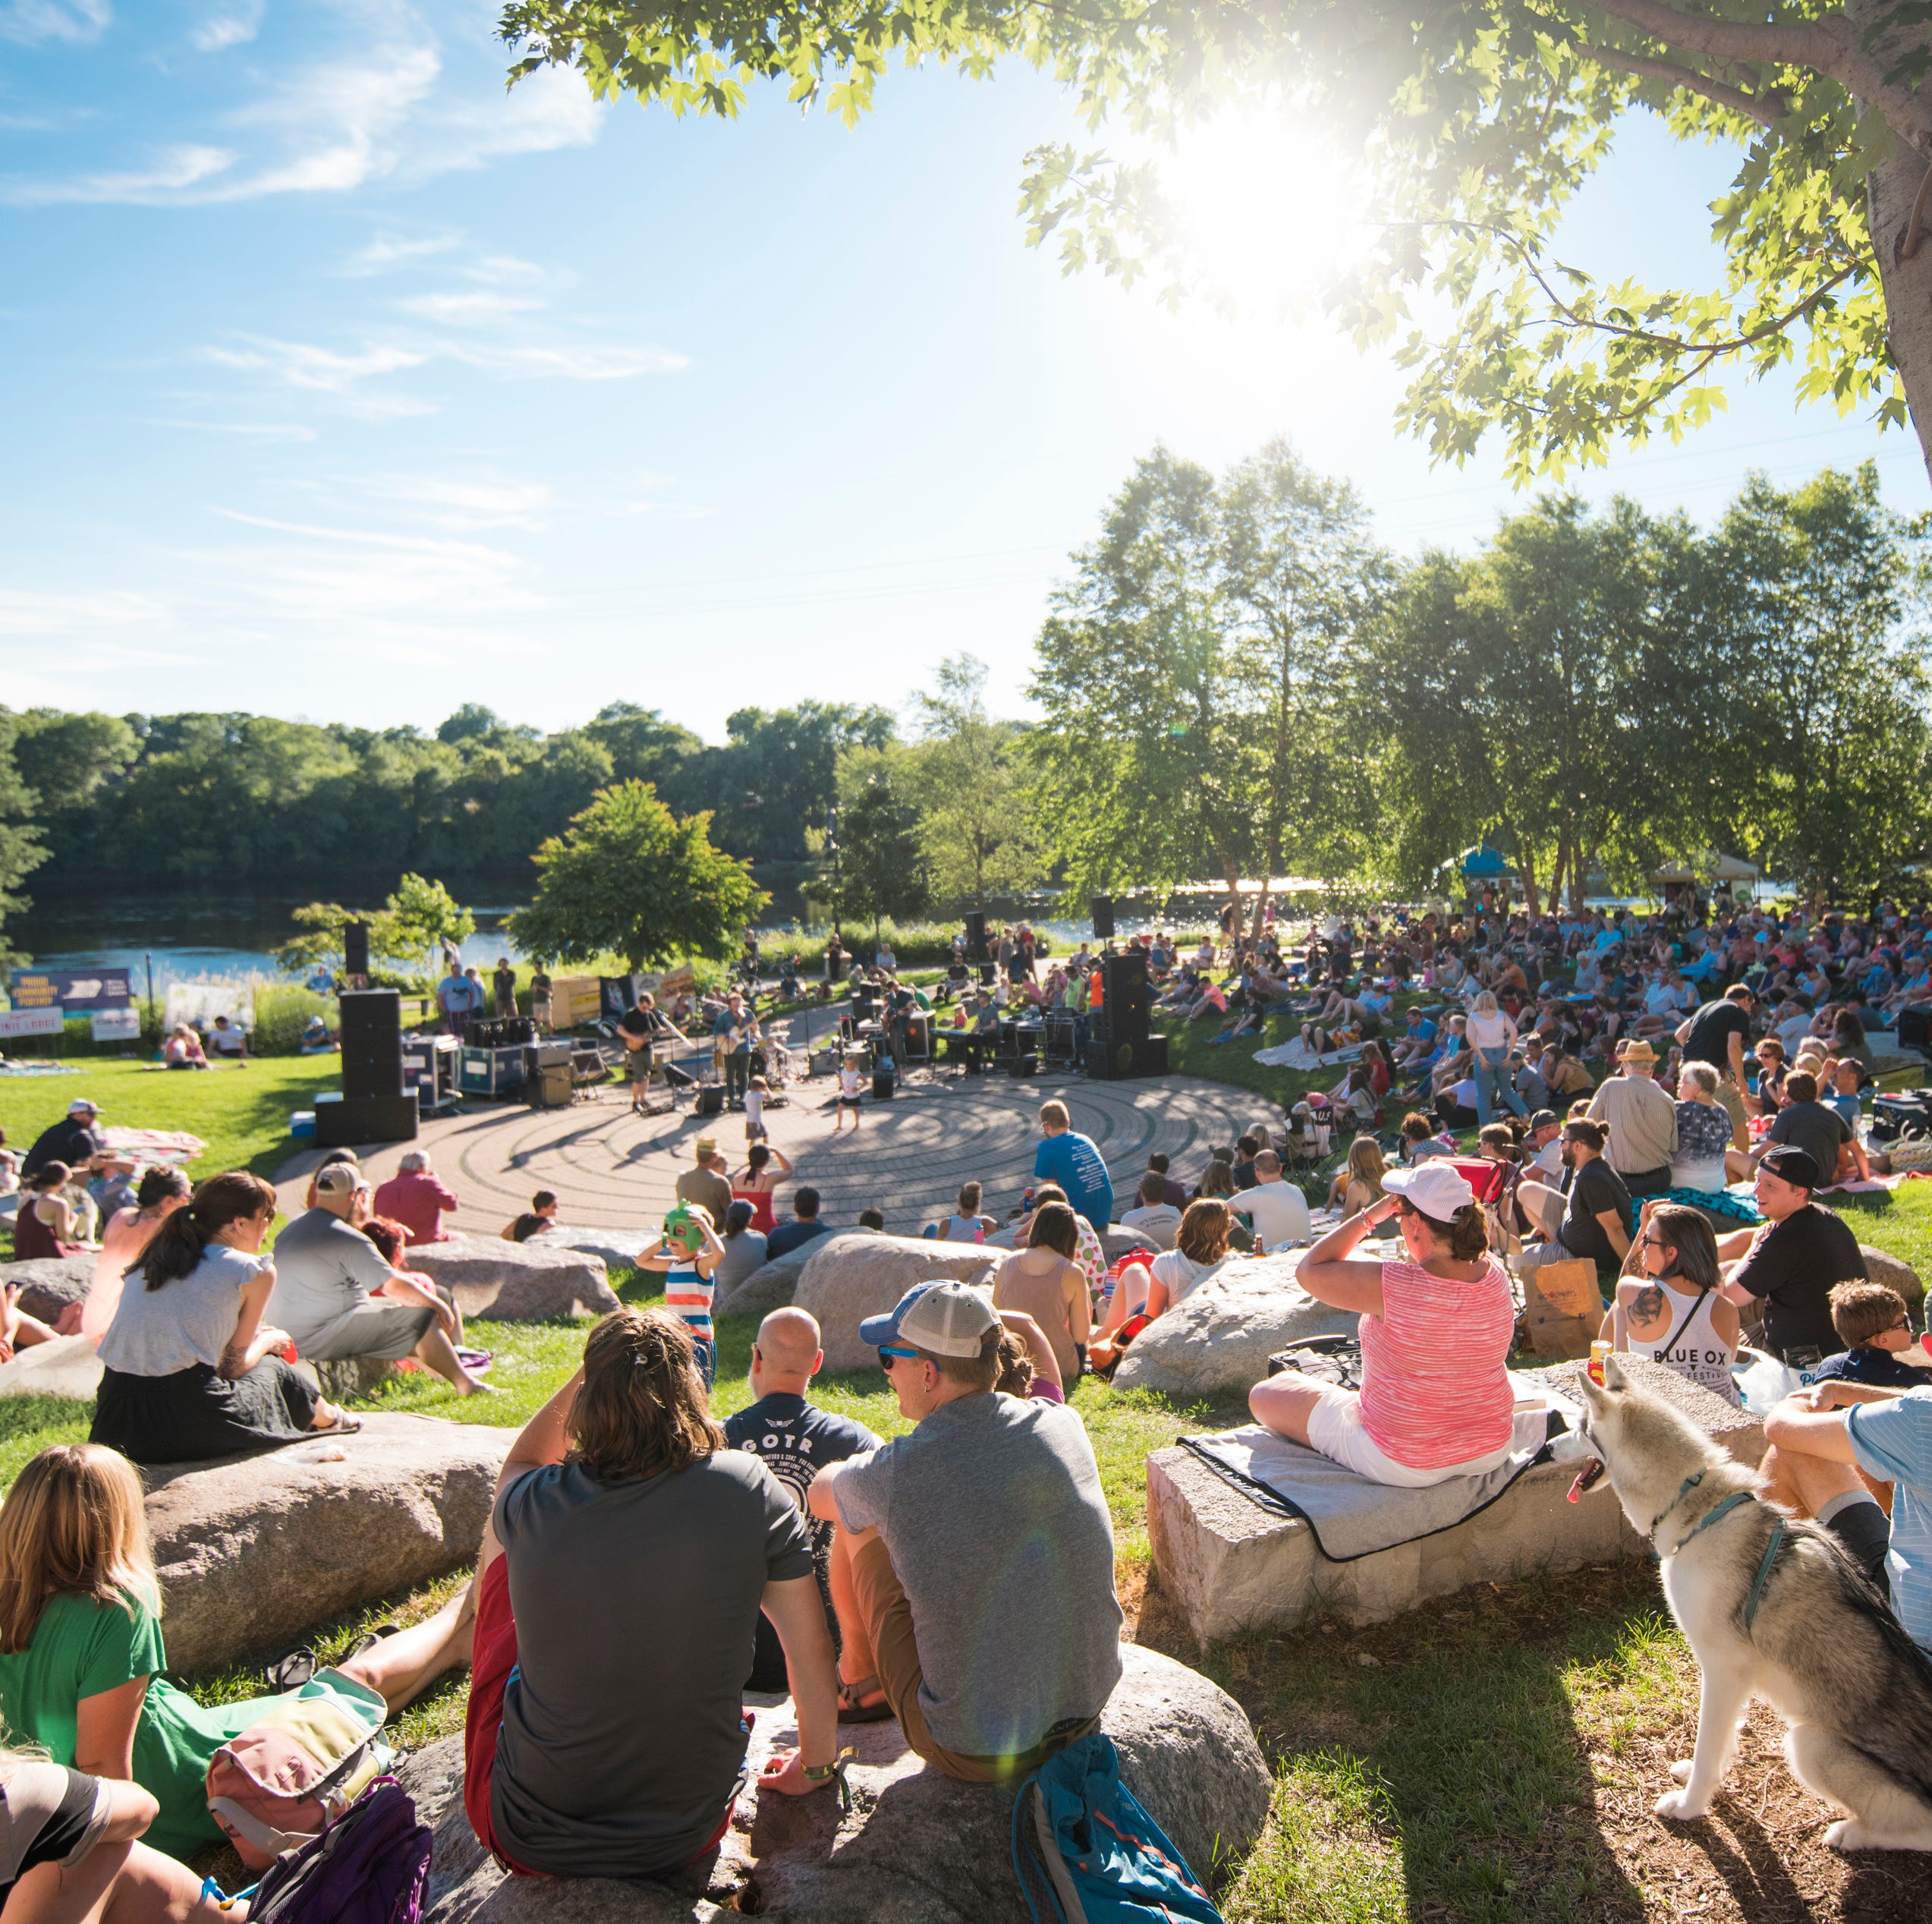 Capital of cool: Eau Claire offers good beer, art and free concerts for a summer getaway